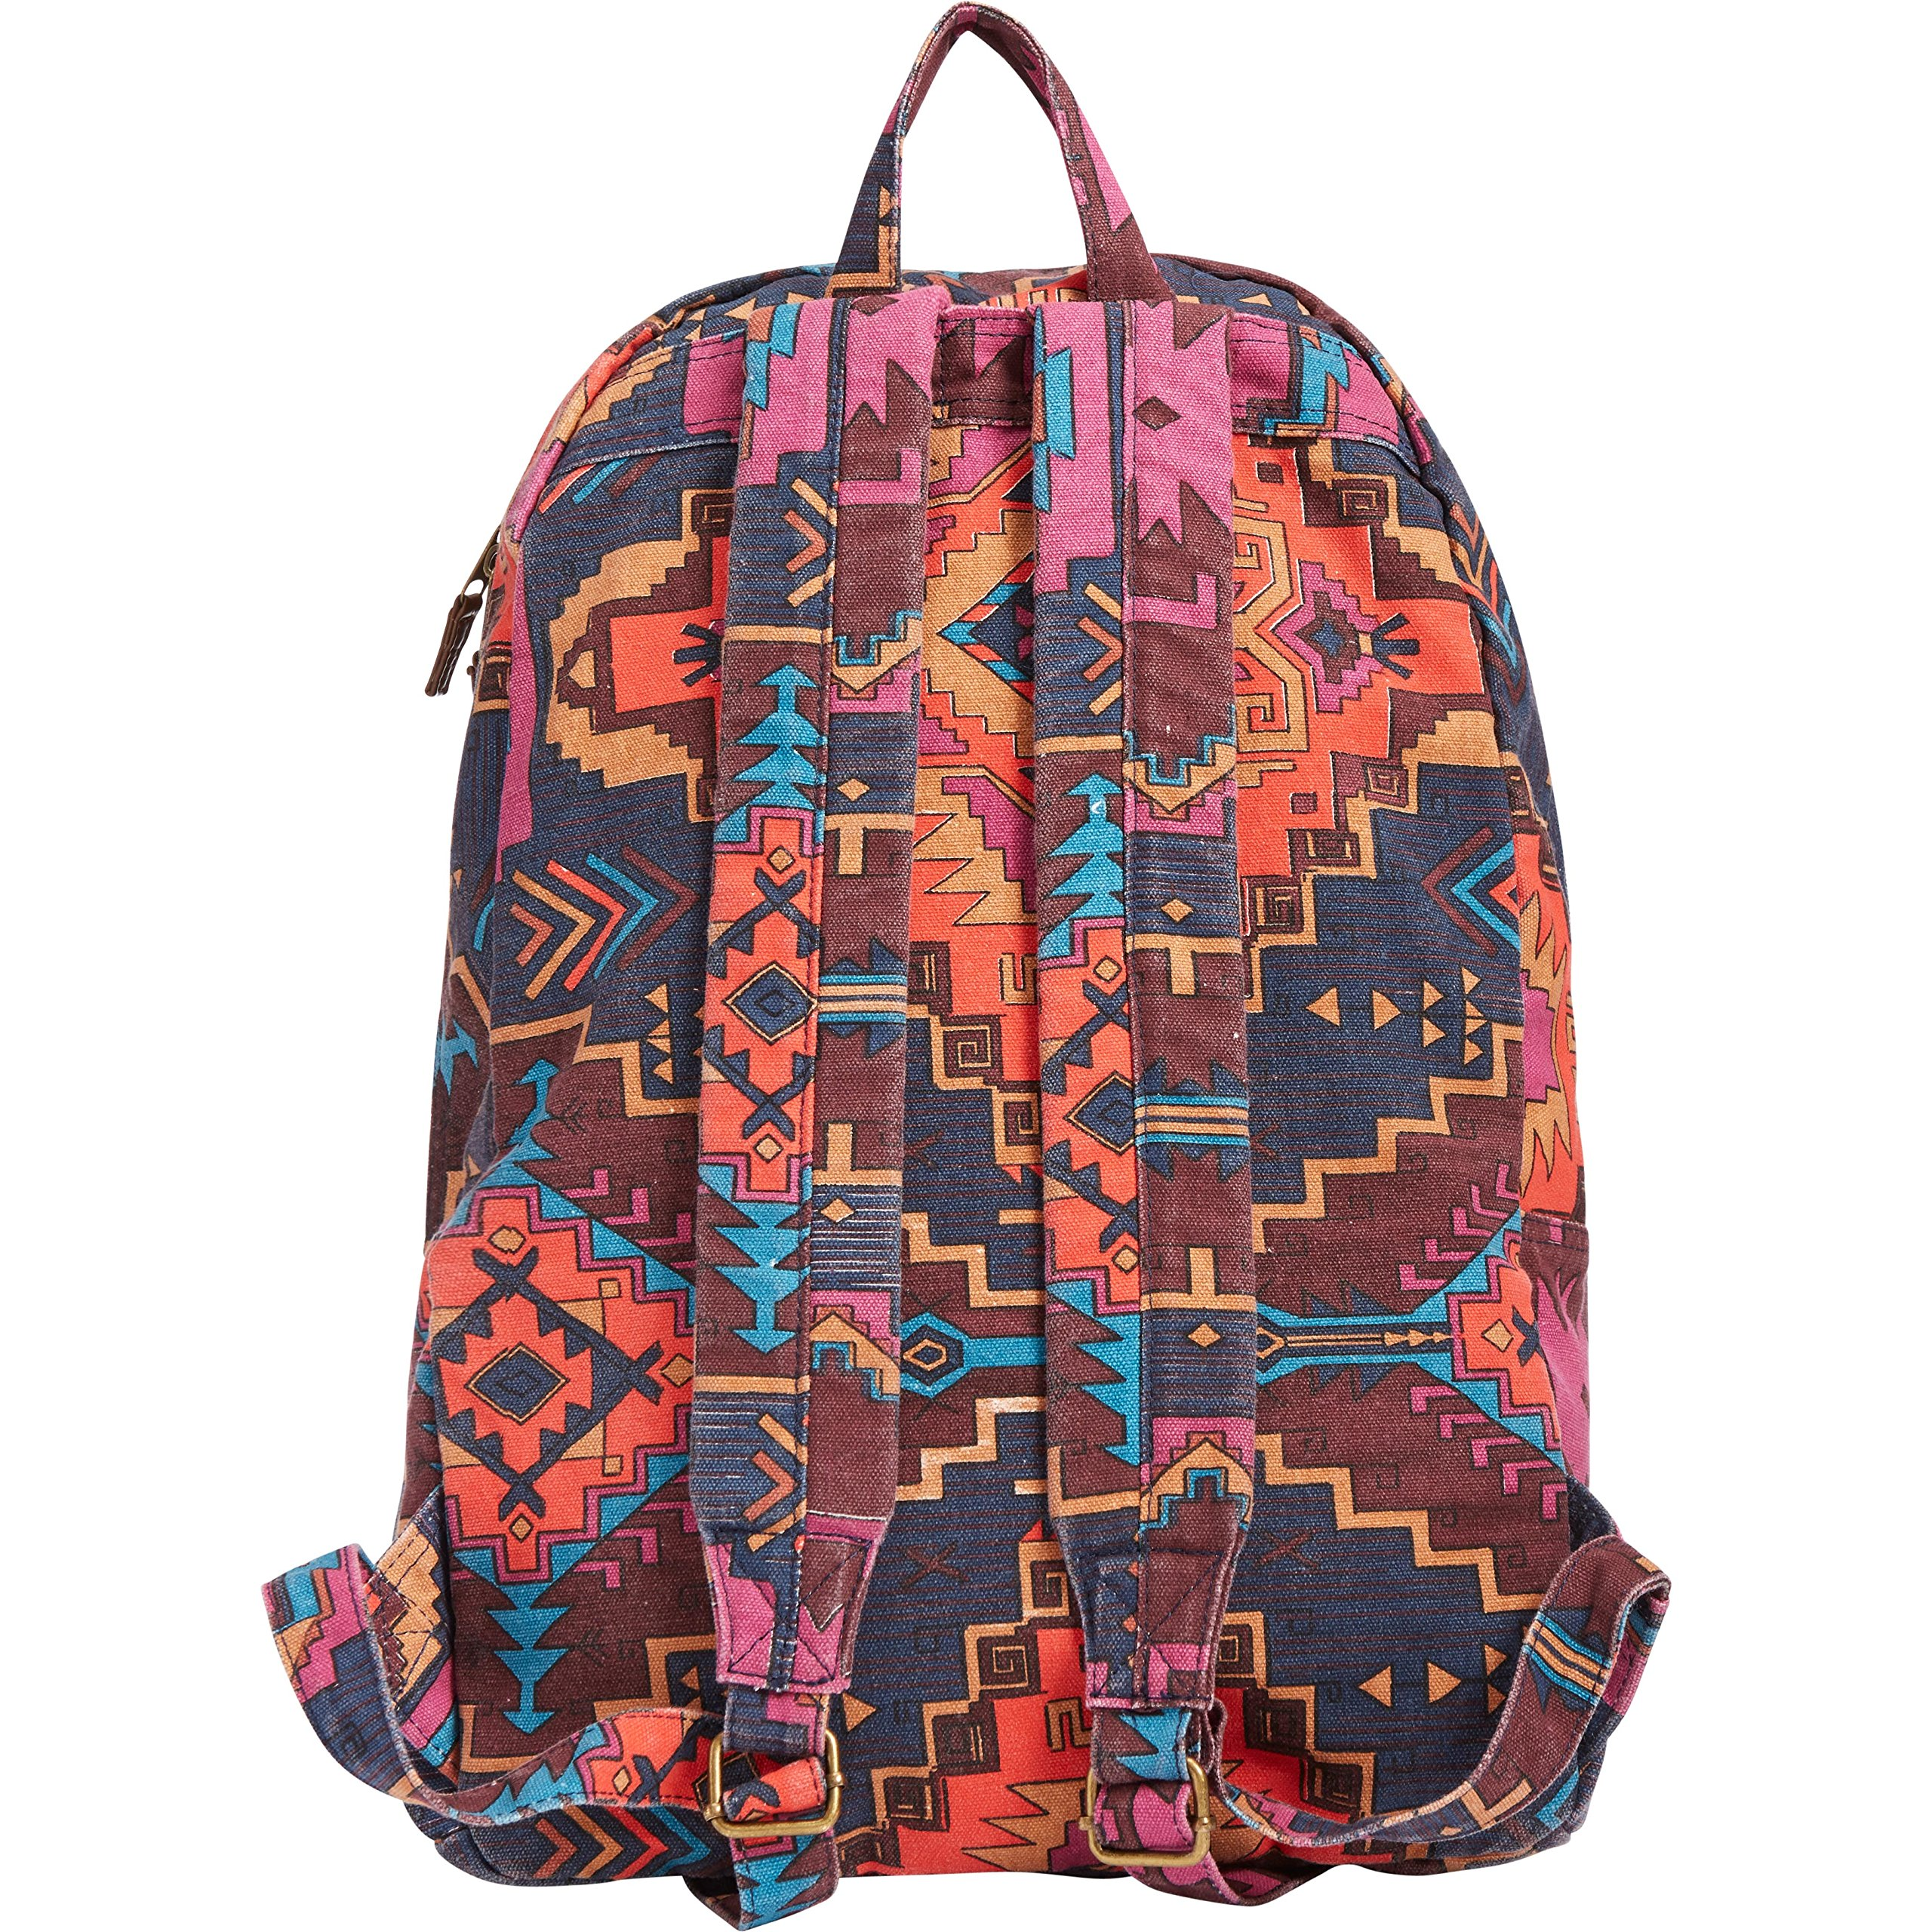 Billabong Women's Juniors Hand Over Love Backpack, Multi by Billabong (Image #2)